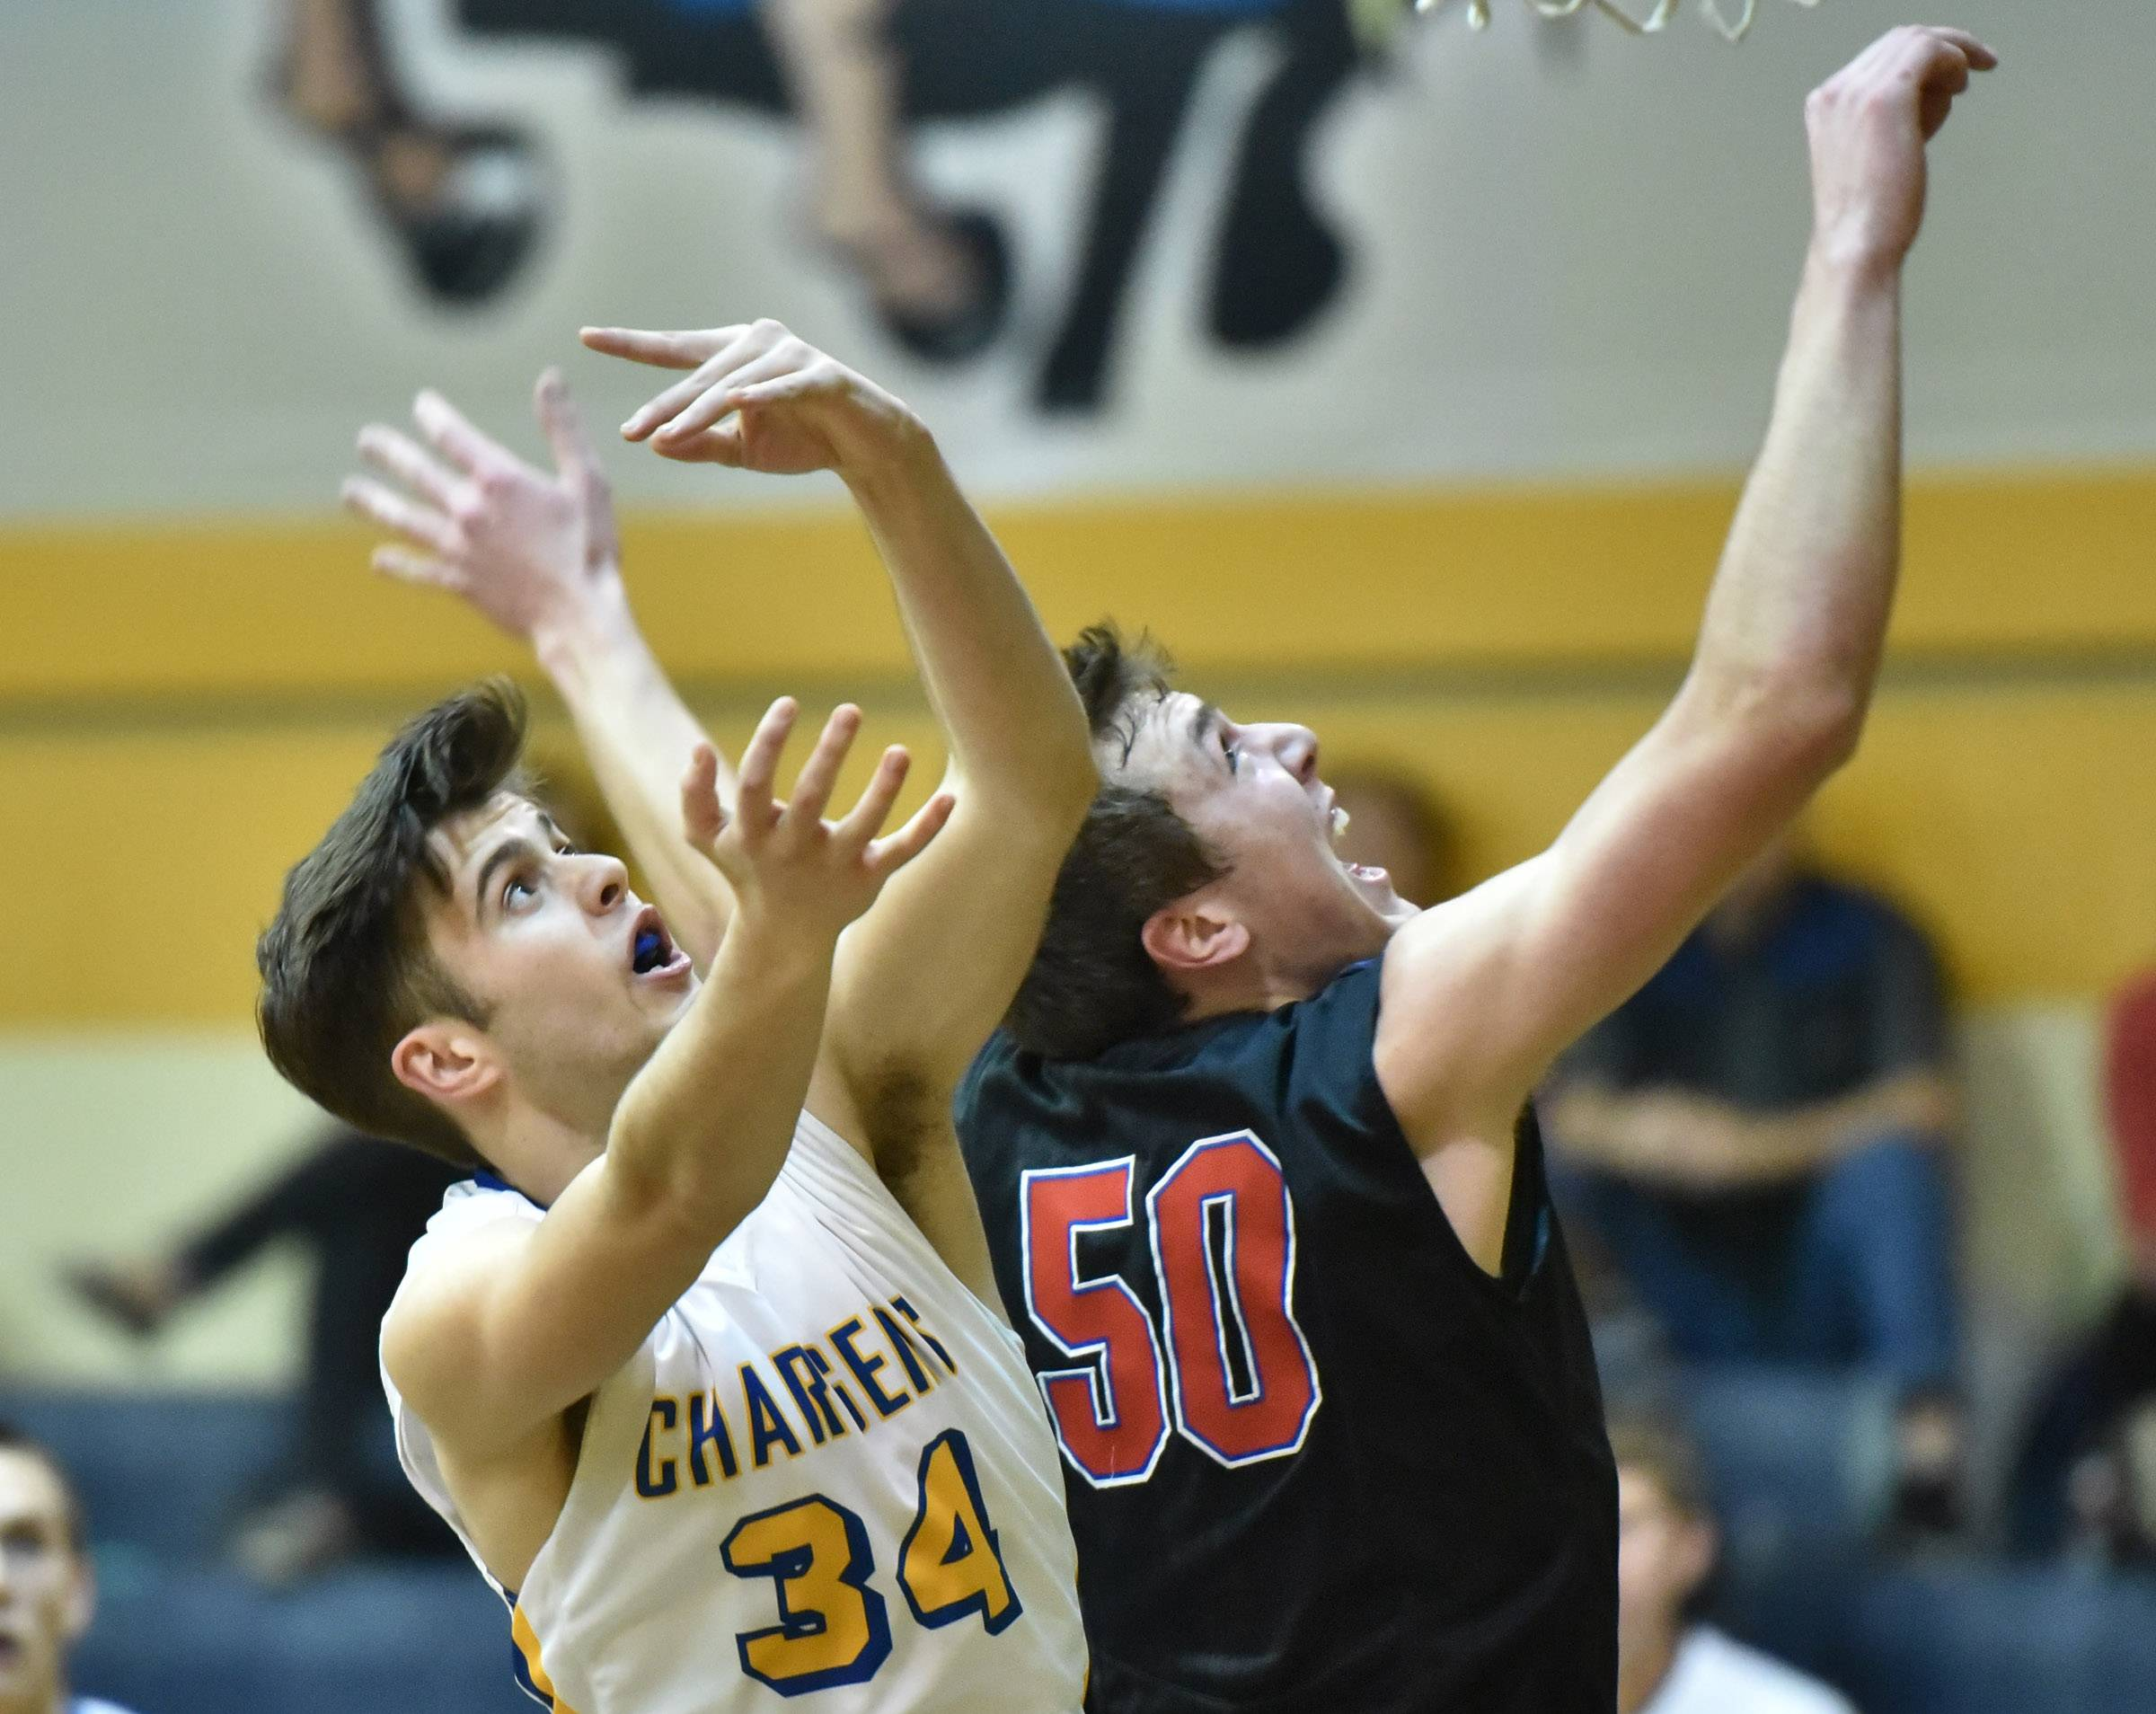 Aurora Central Catholic's Dru Ingraham and Glenbard South's Charlie Bair battle for a rebound Tuesday in Aurora.